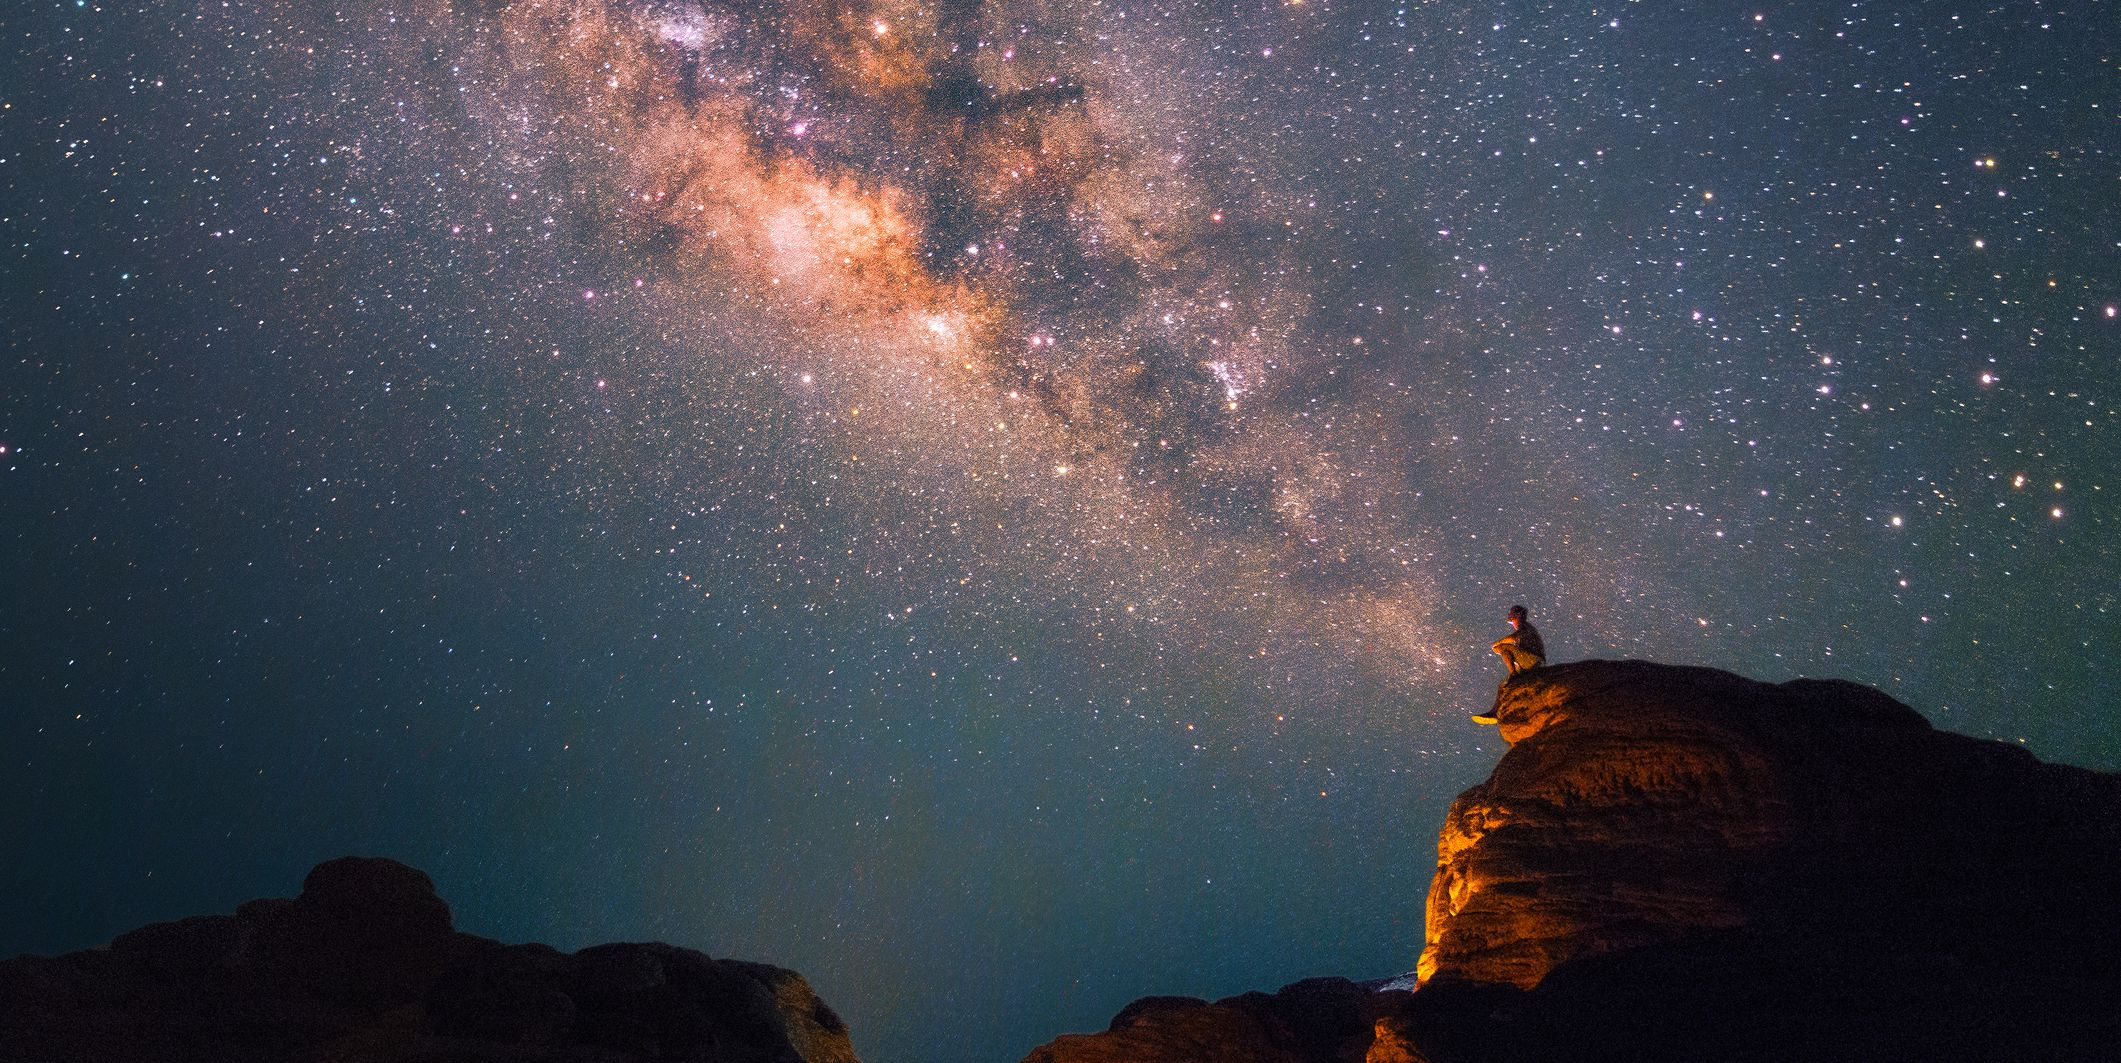 How to start stargazing if you're a complete beginner